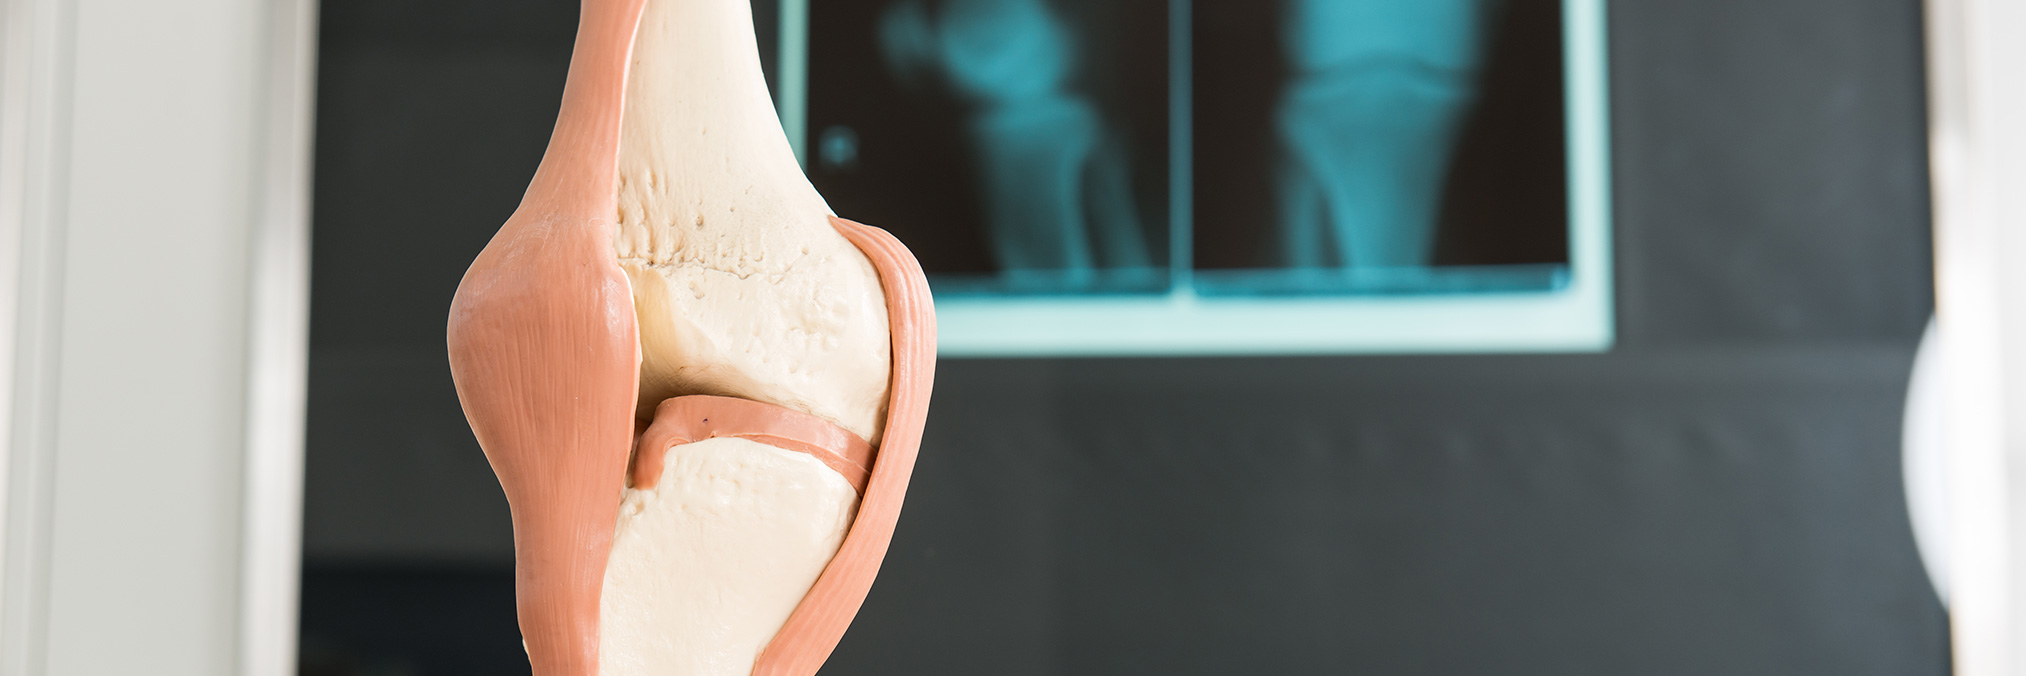 What to Expect After ACL Surgery: Recovery Time, Exercises & More